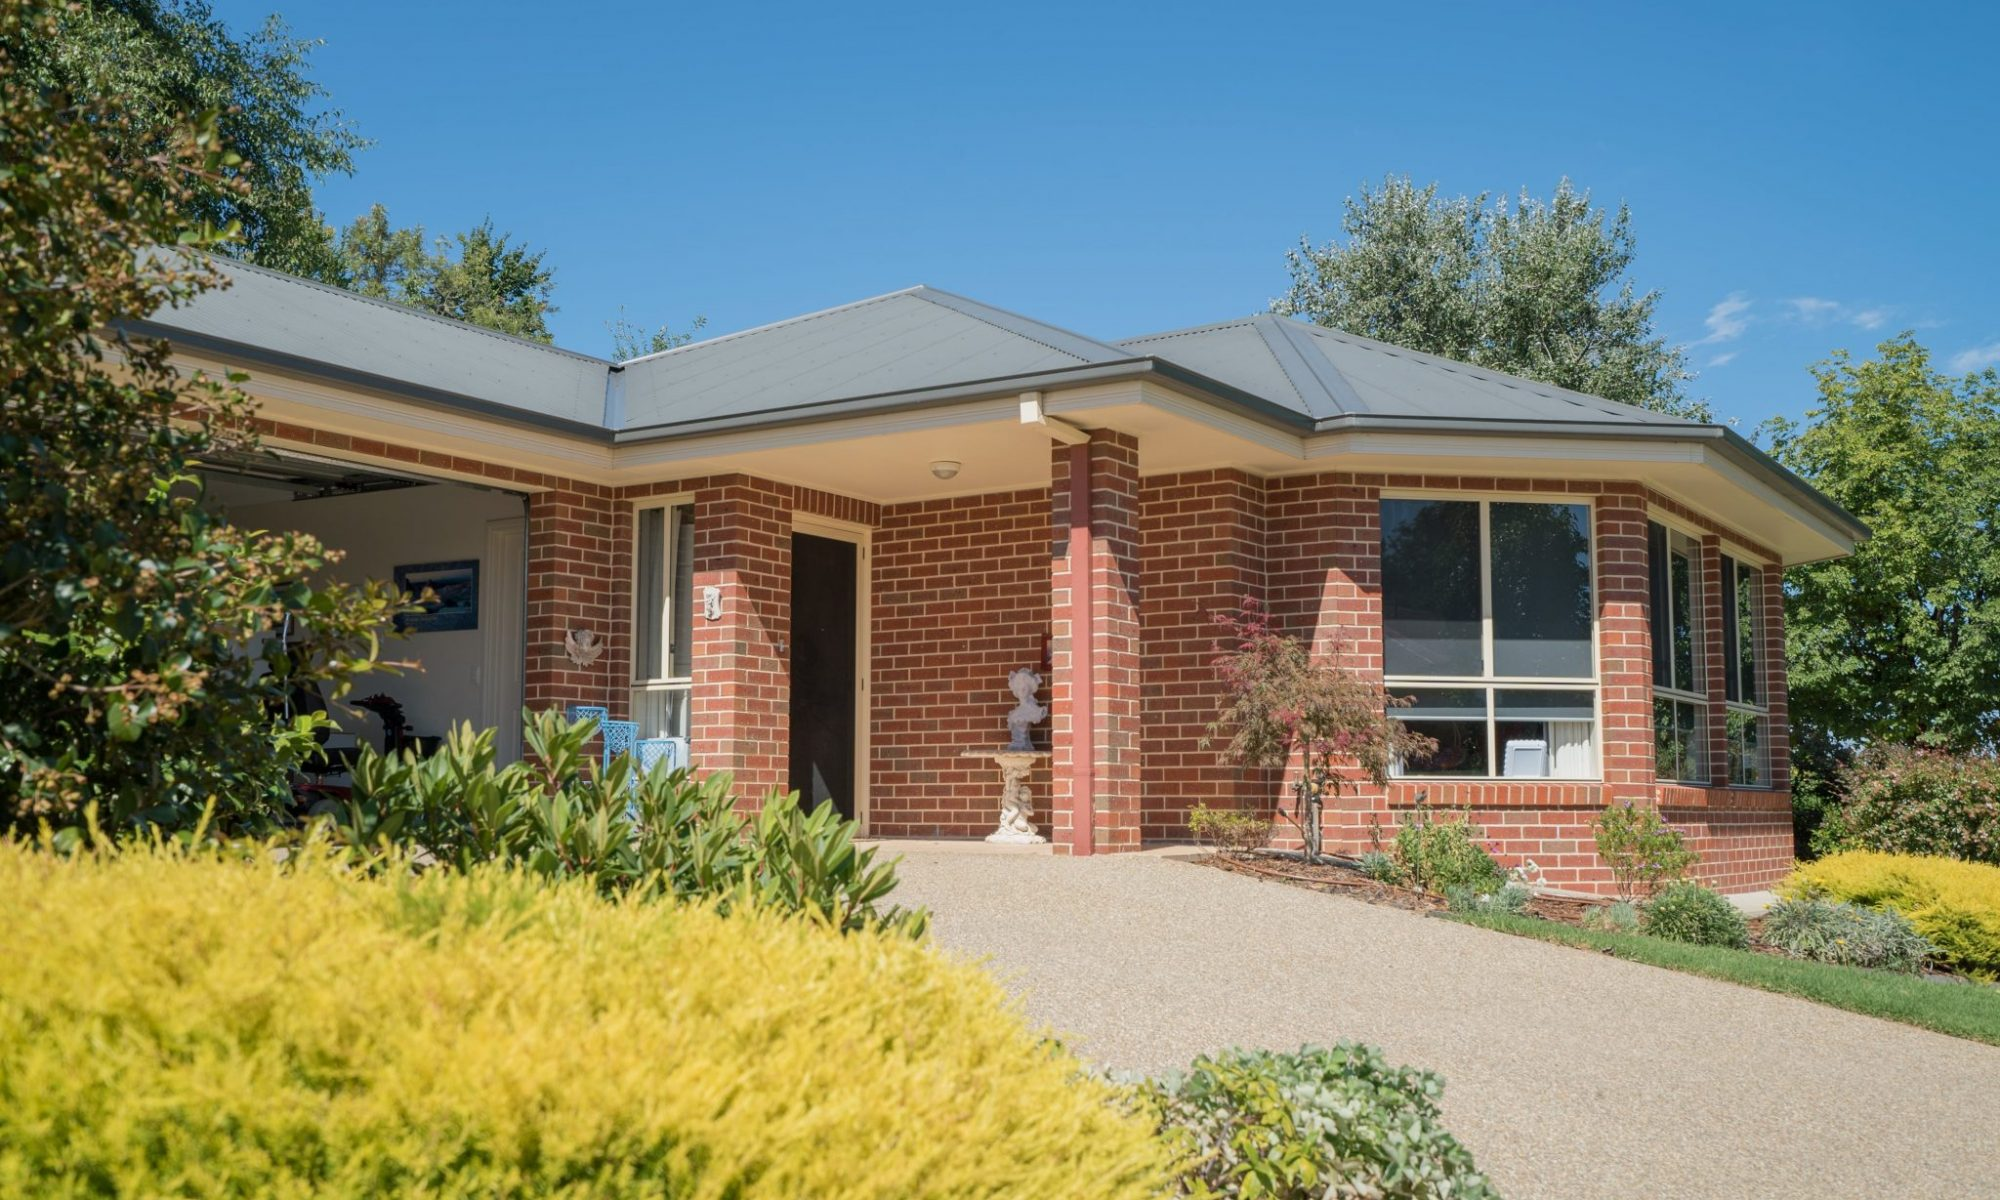 Beechworth Hillsborough Retirement Village - Residential unit